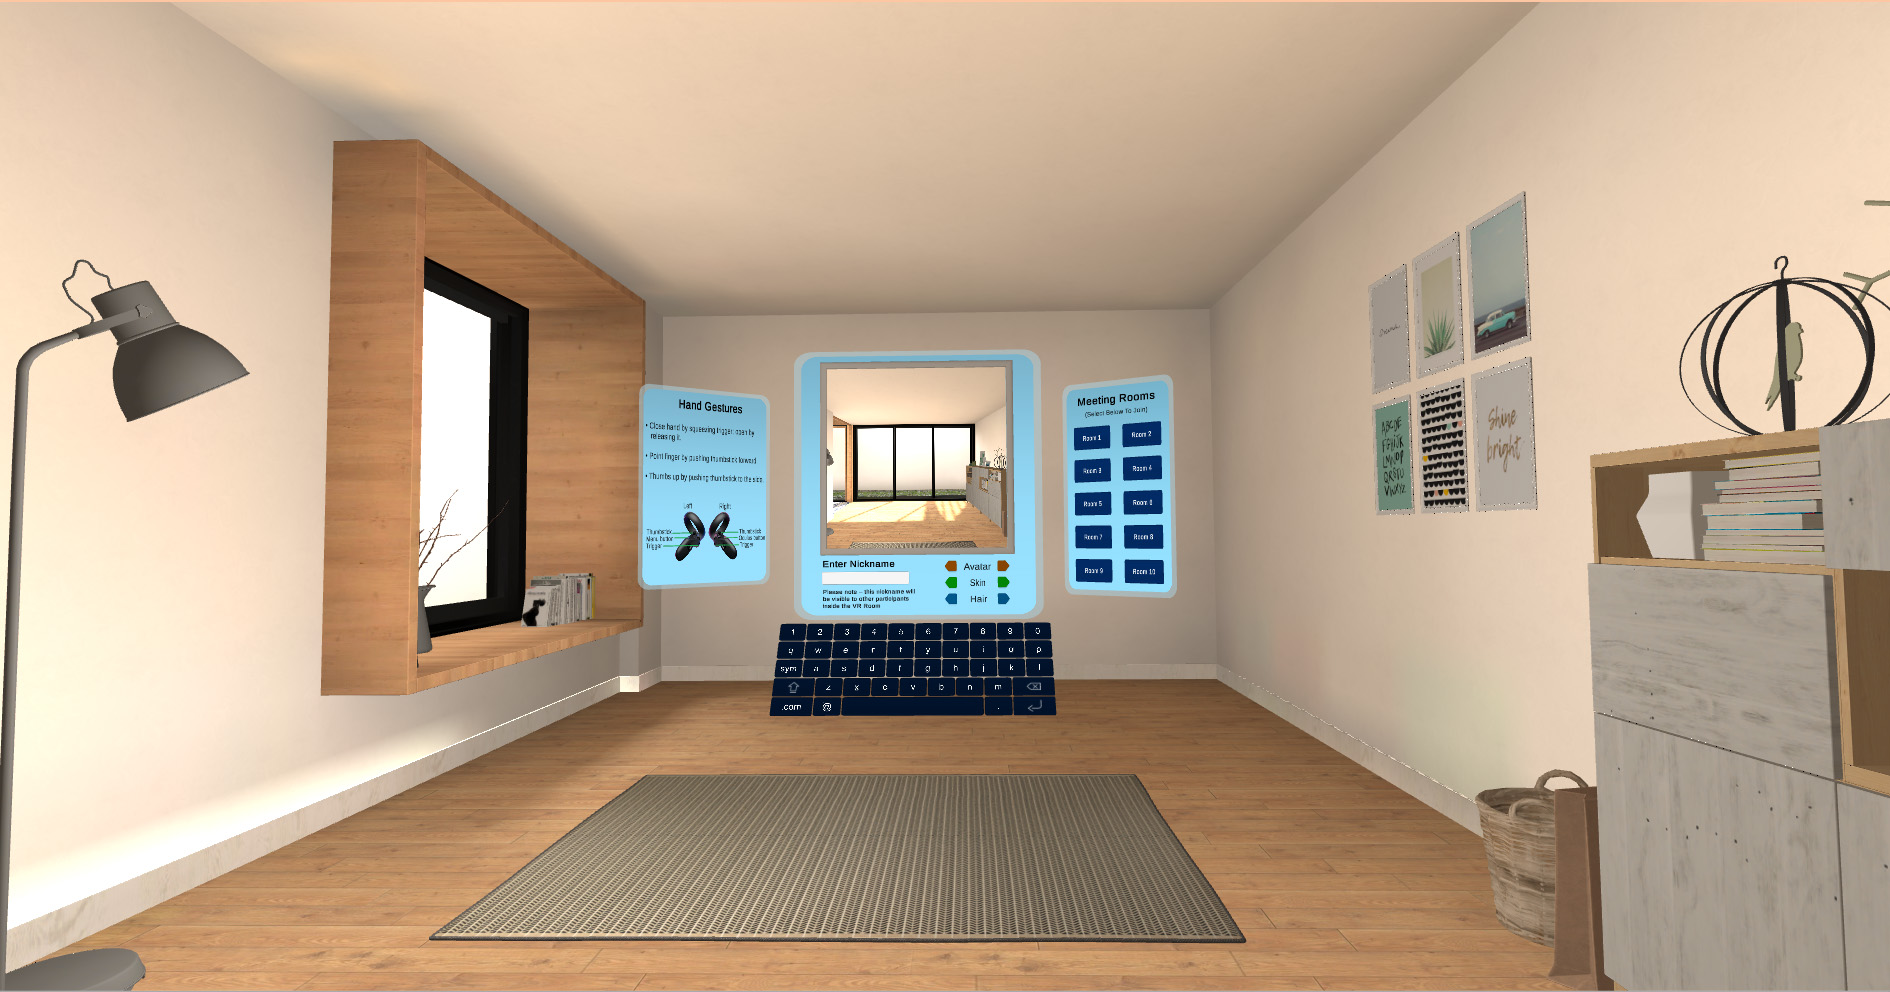 image of Starting Room in VR simulation